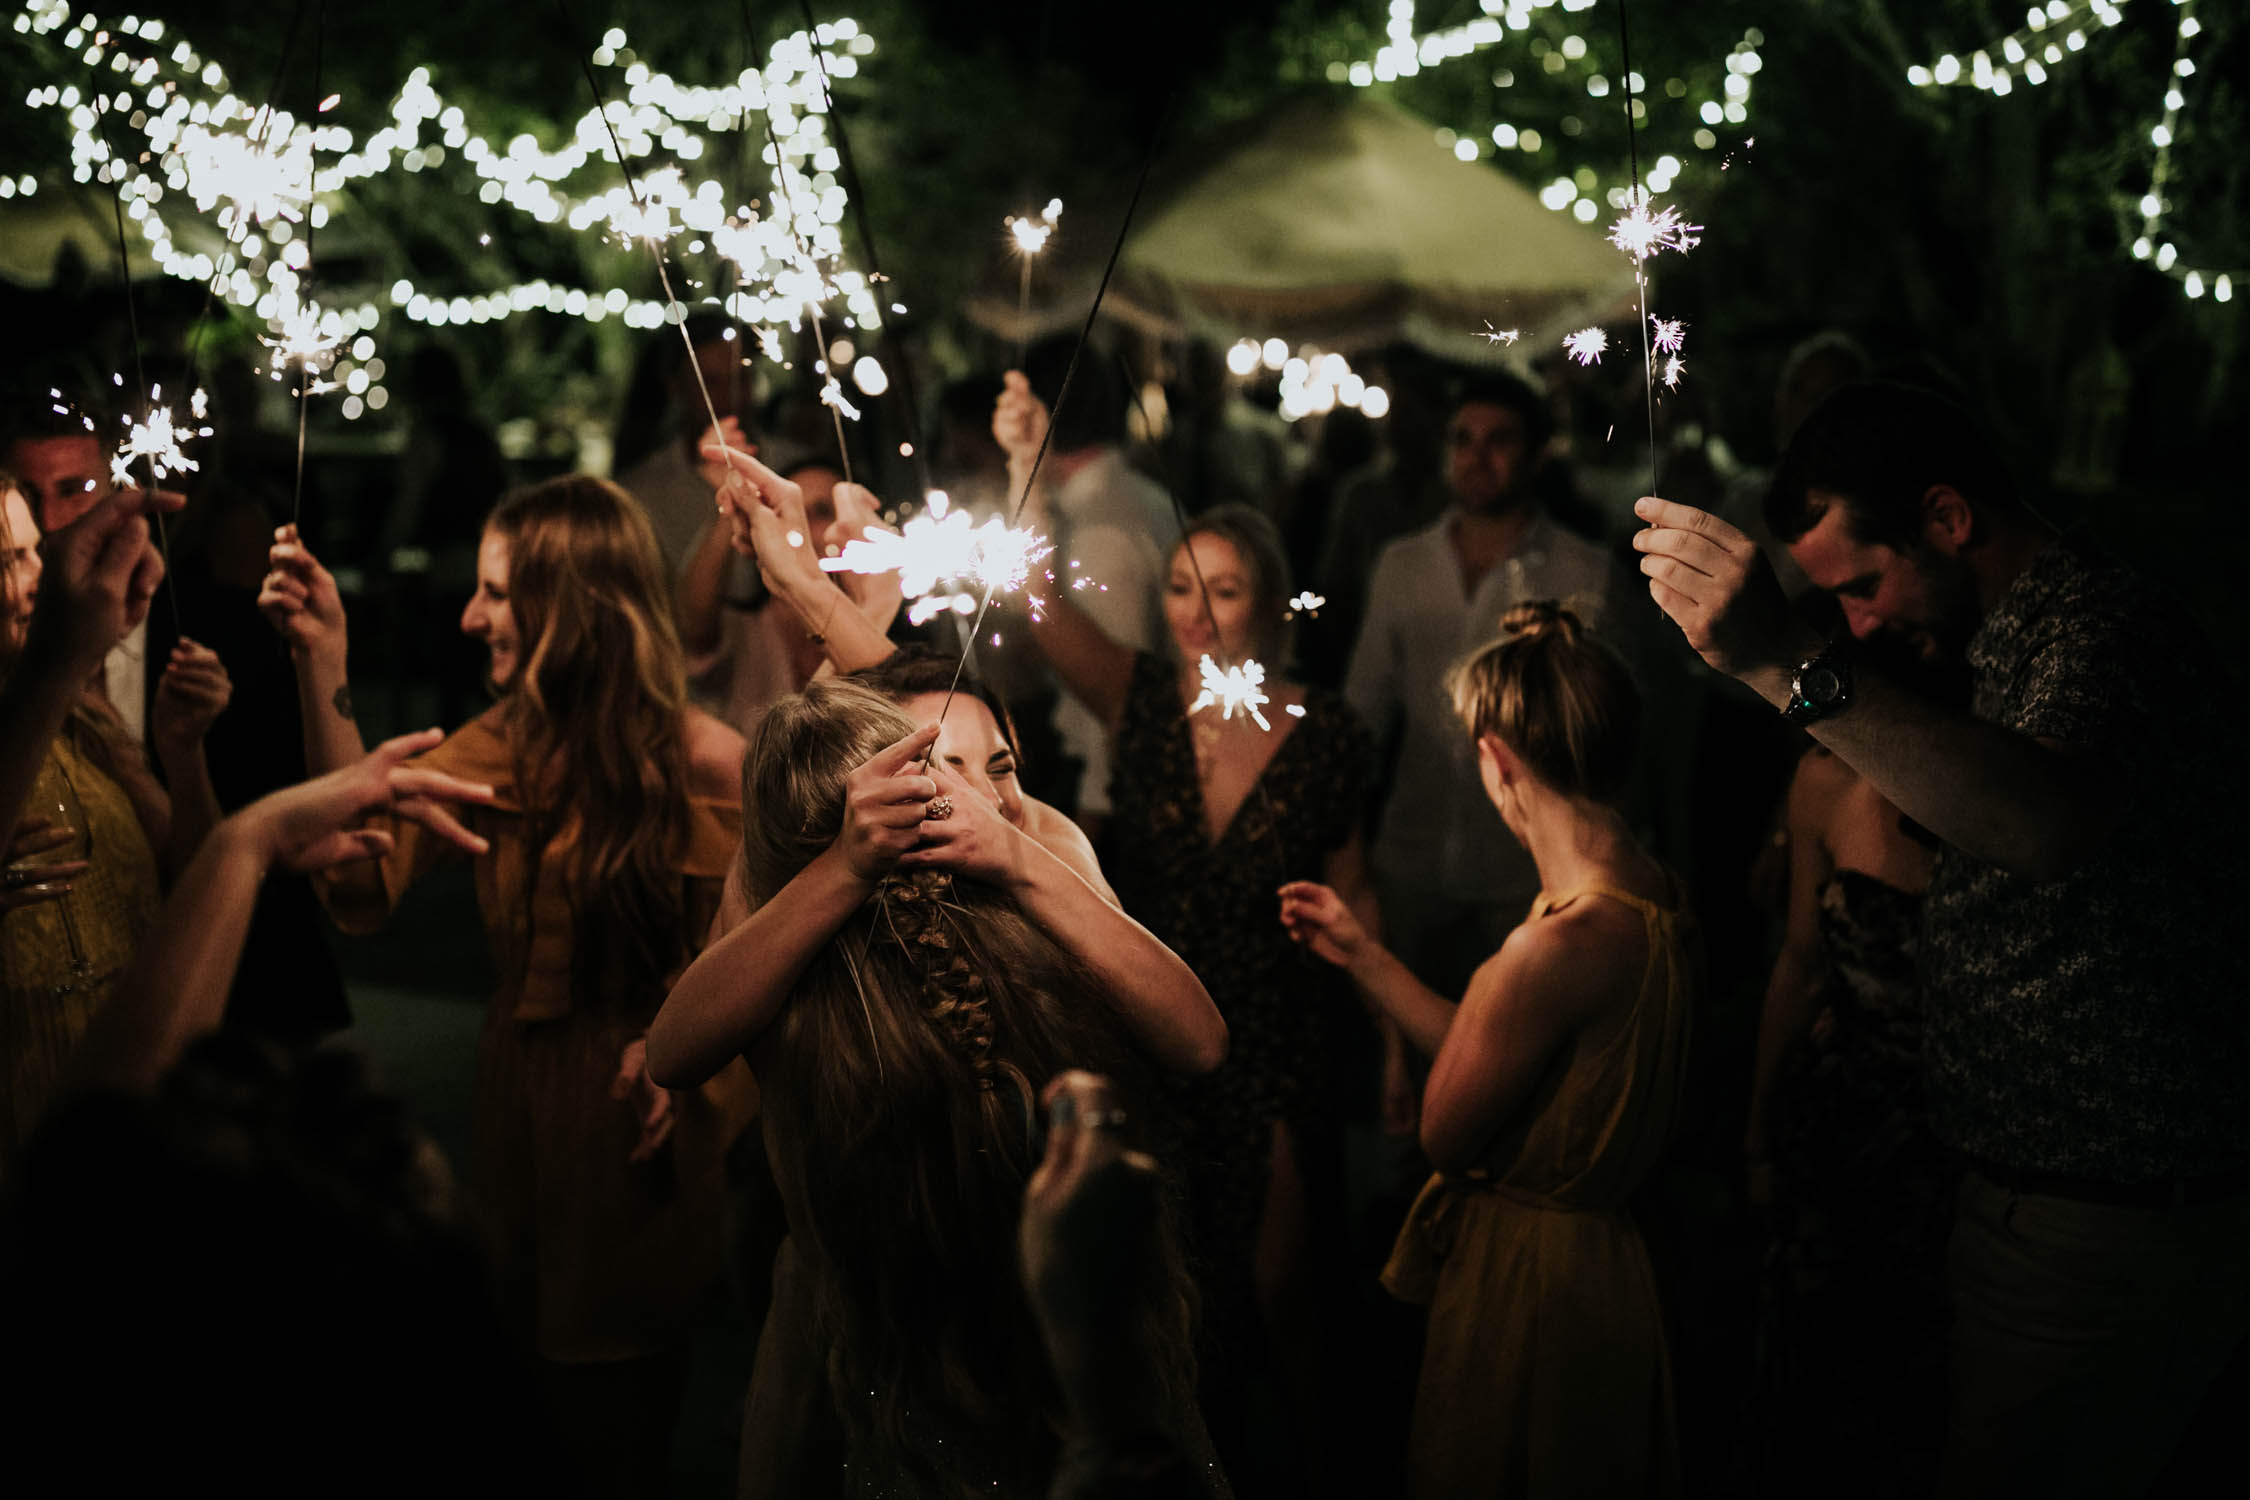 Sparklers on dance floor epic best wedding dancing photos